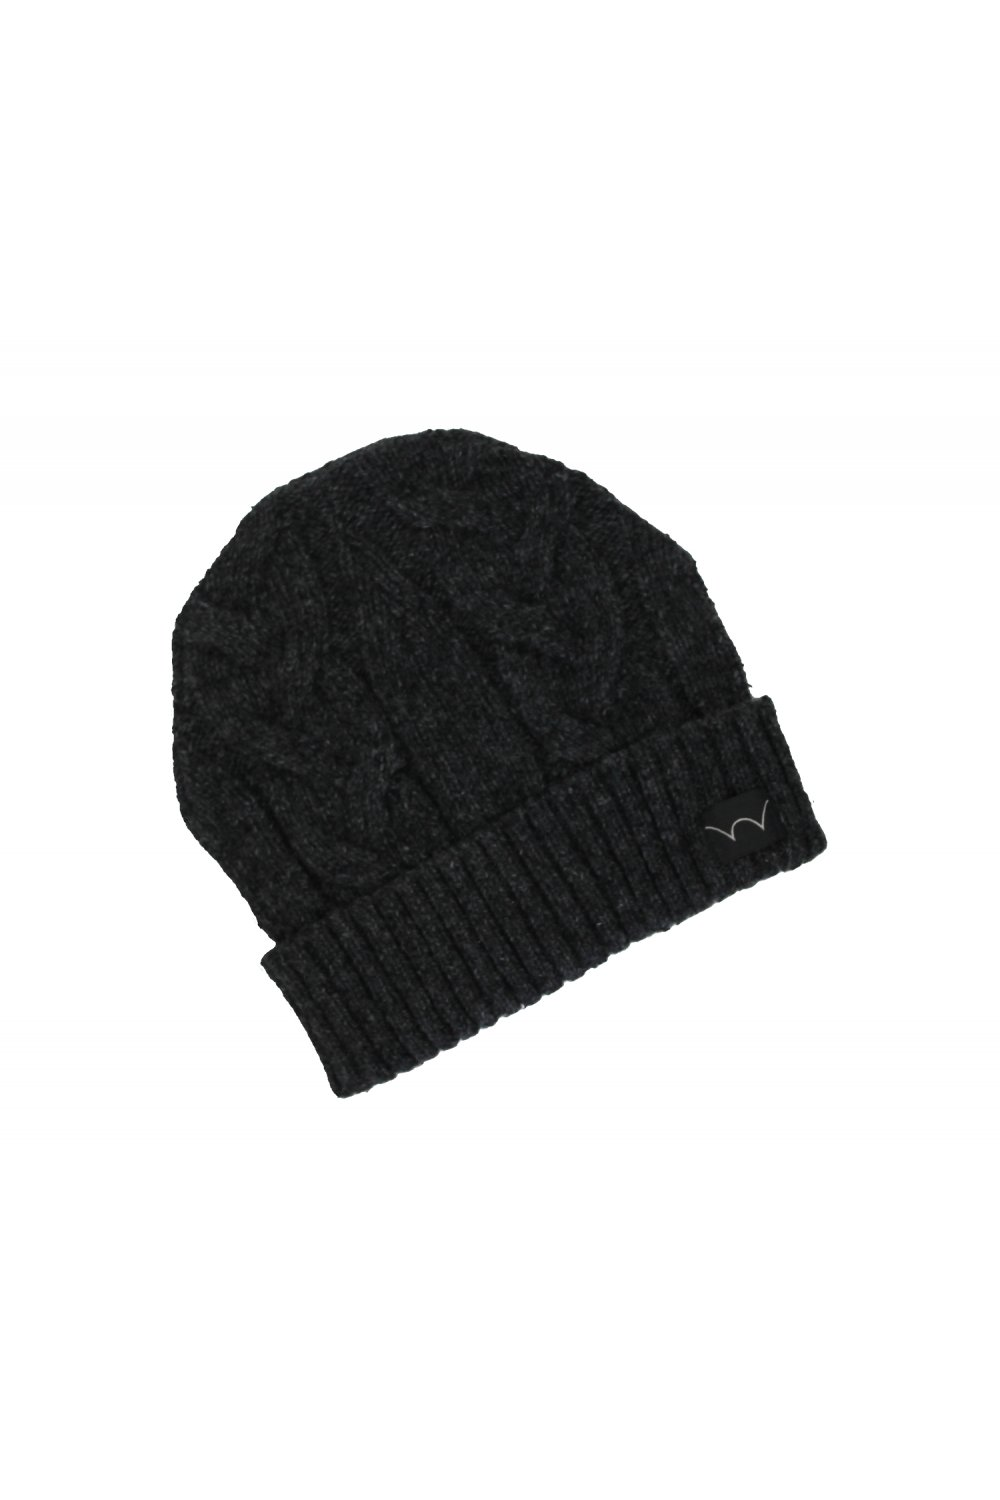 3820c225485 Edwin Shackle Cable Knit Beanie (Charcoal) - Accessories from ...